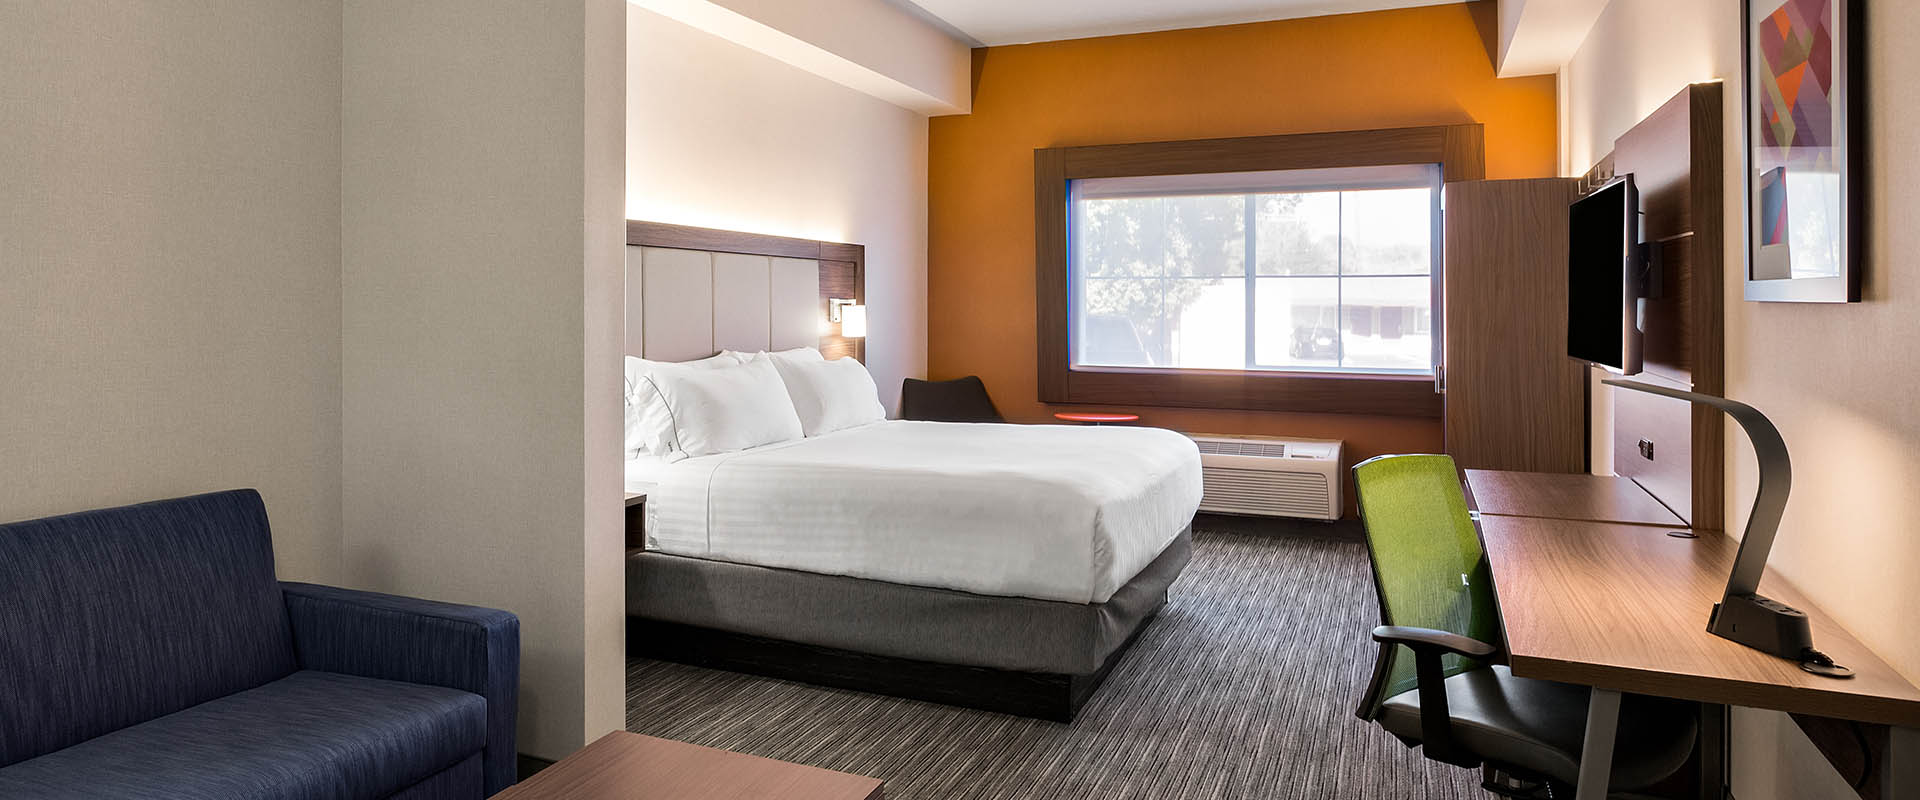 Orovlle hotel, IHG hotel, California, travel, lodging